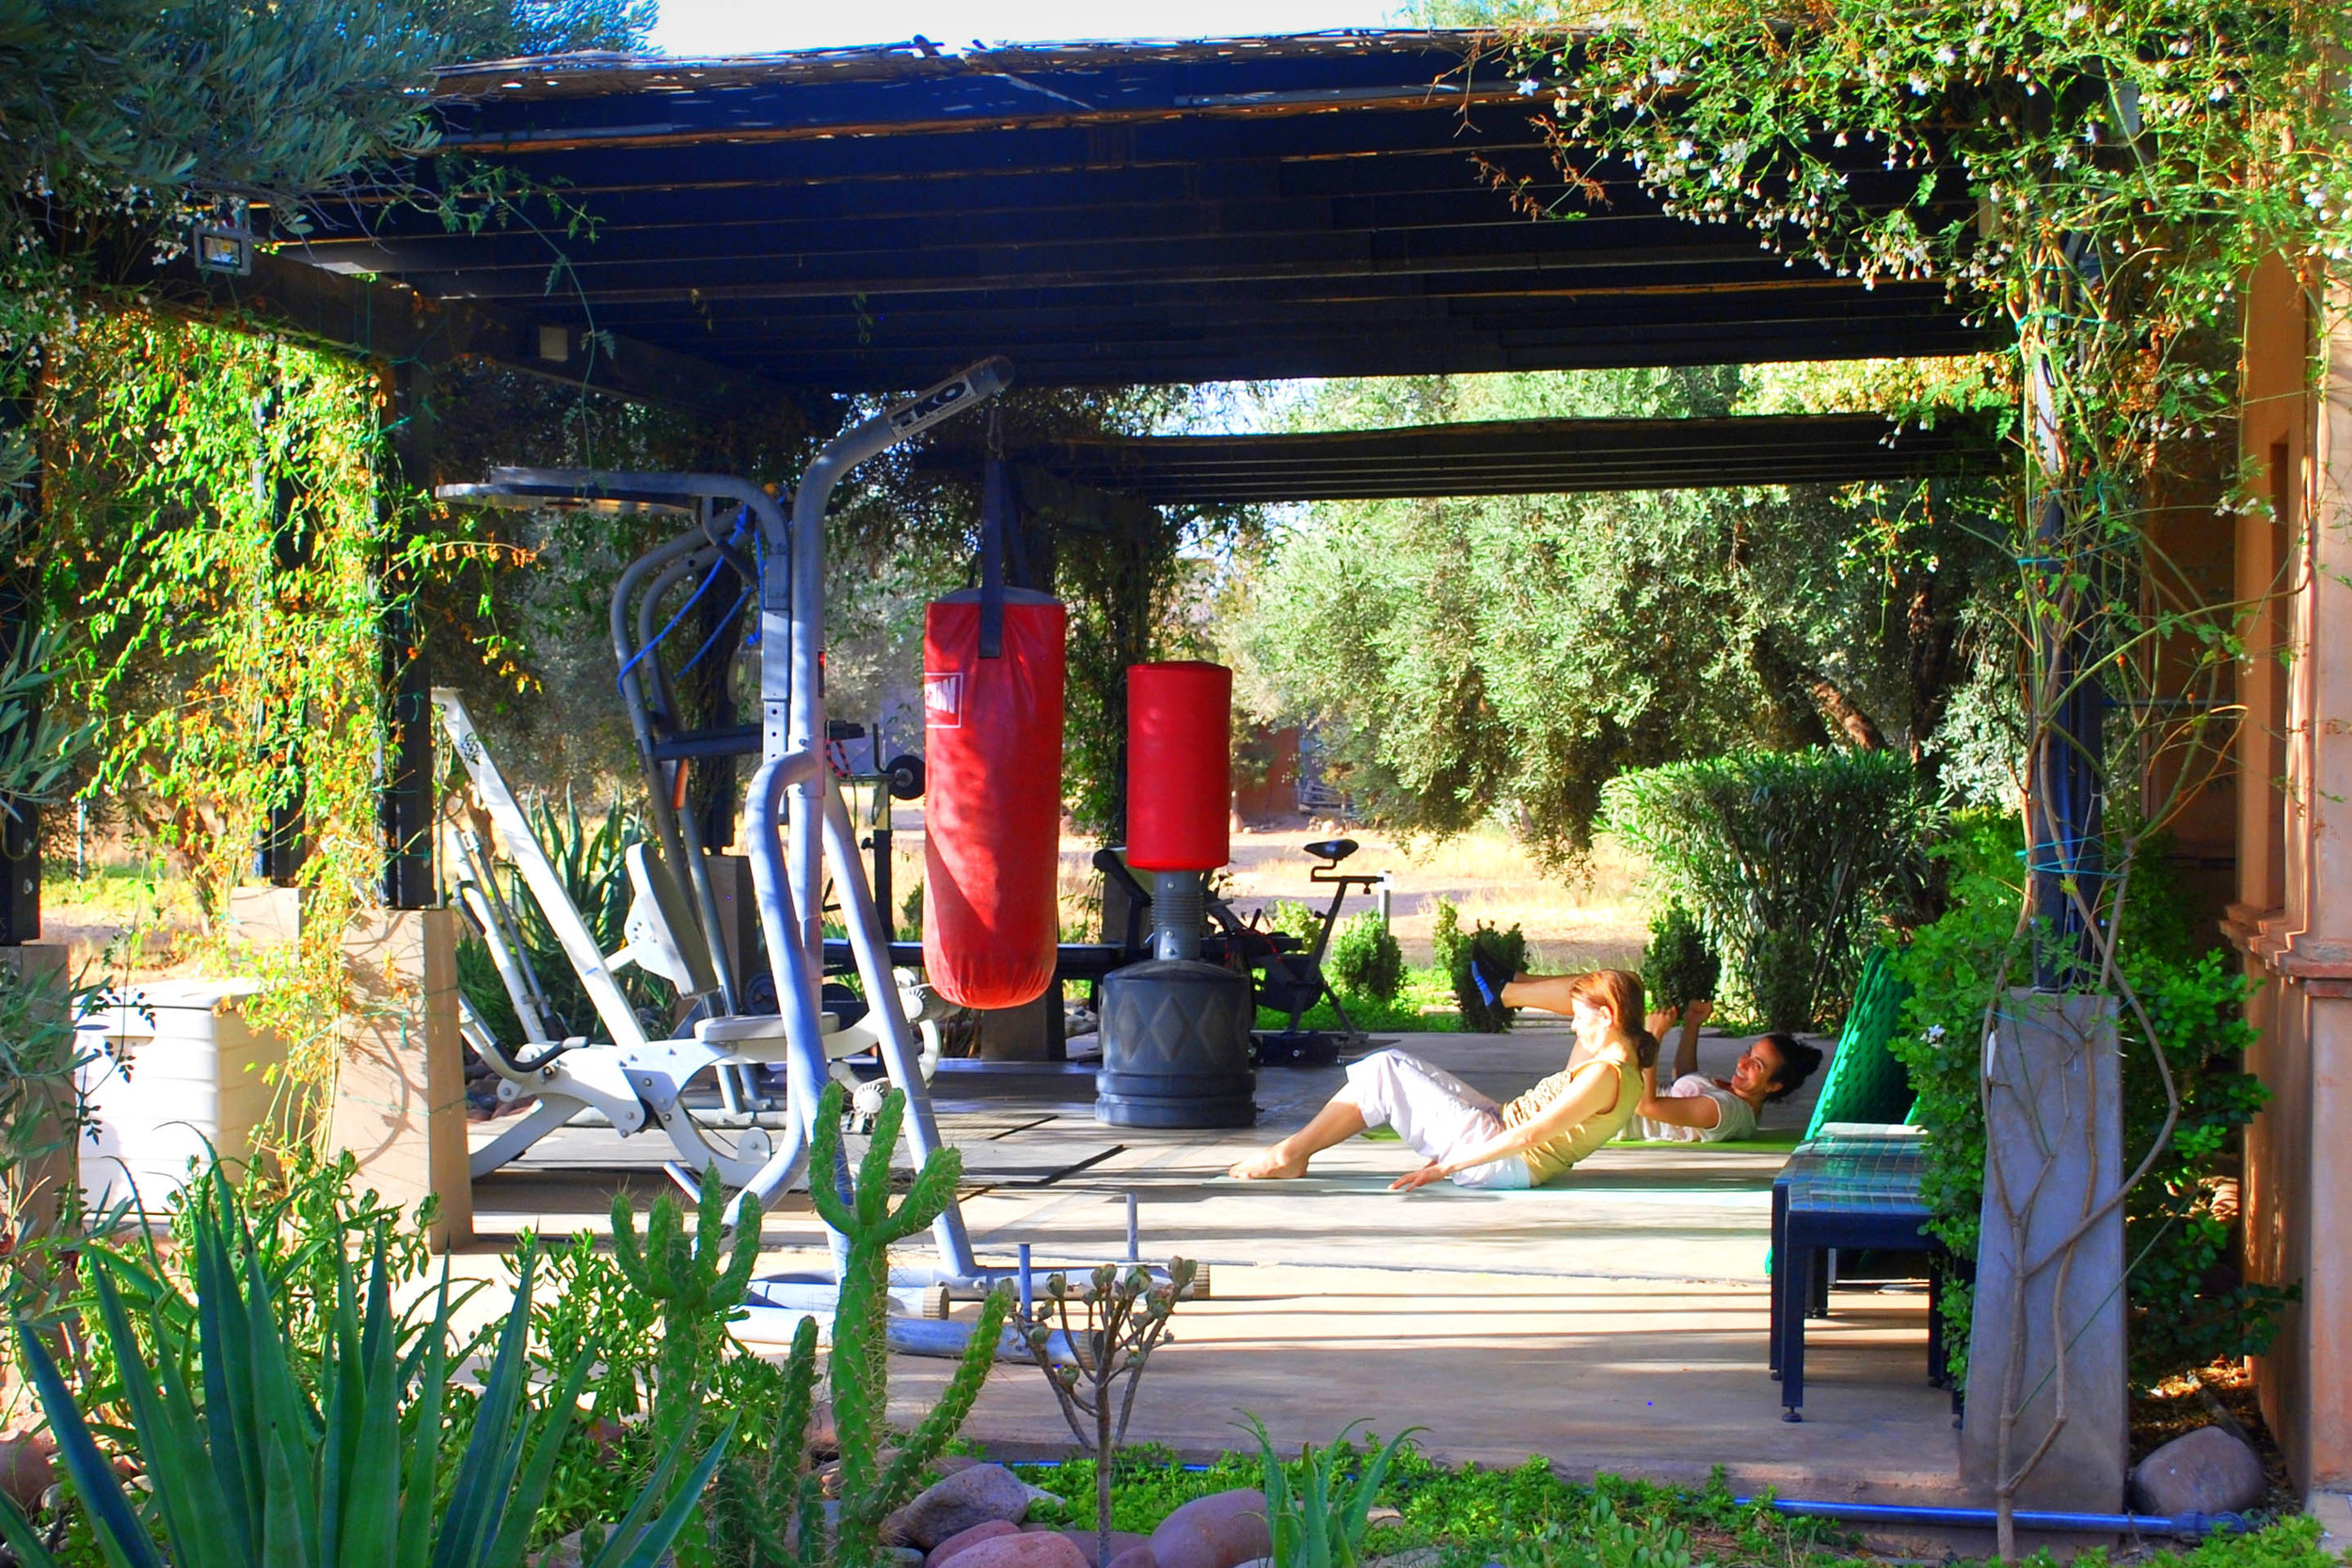 Peacock Pavilions boutique hotel in Marrakech, Morocco – Design by M. Montague - Outdoor Gym